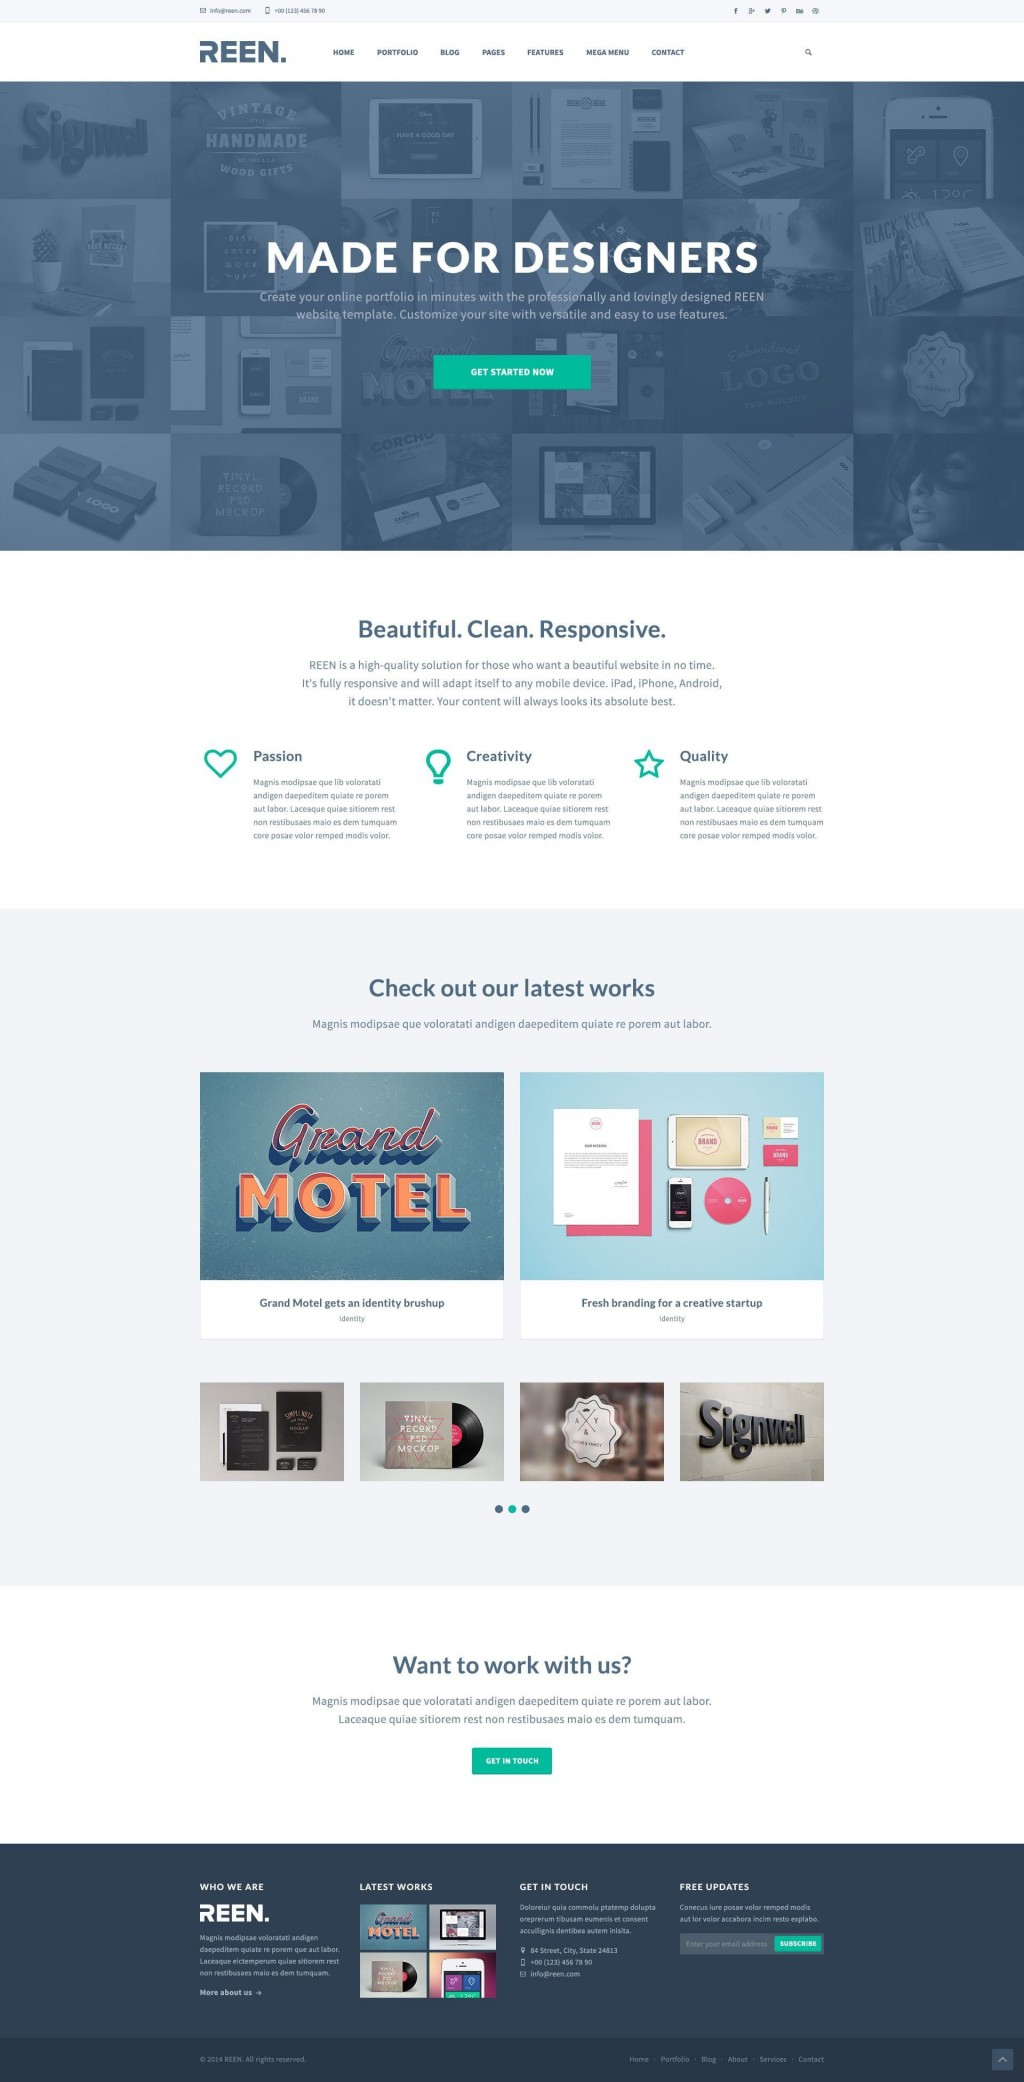 000 Sensational Website Template Free Download High Definition  Online Shopping Colorlib New Wordpres Html5 For BusinesLarge